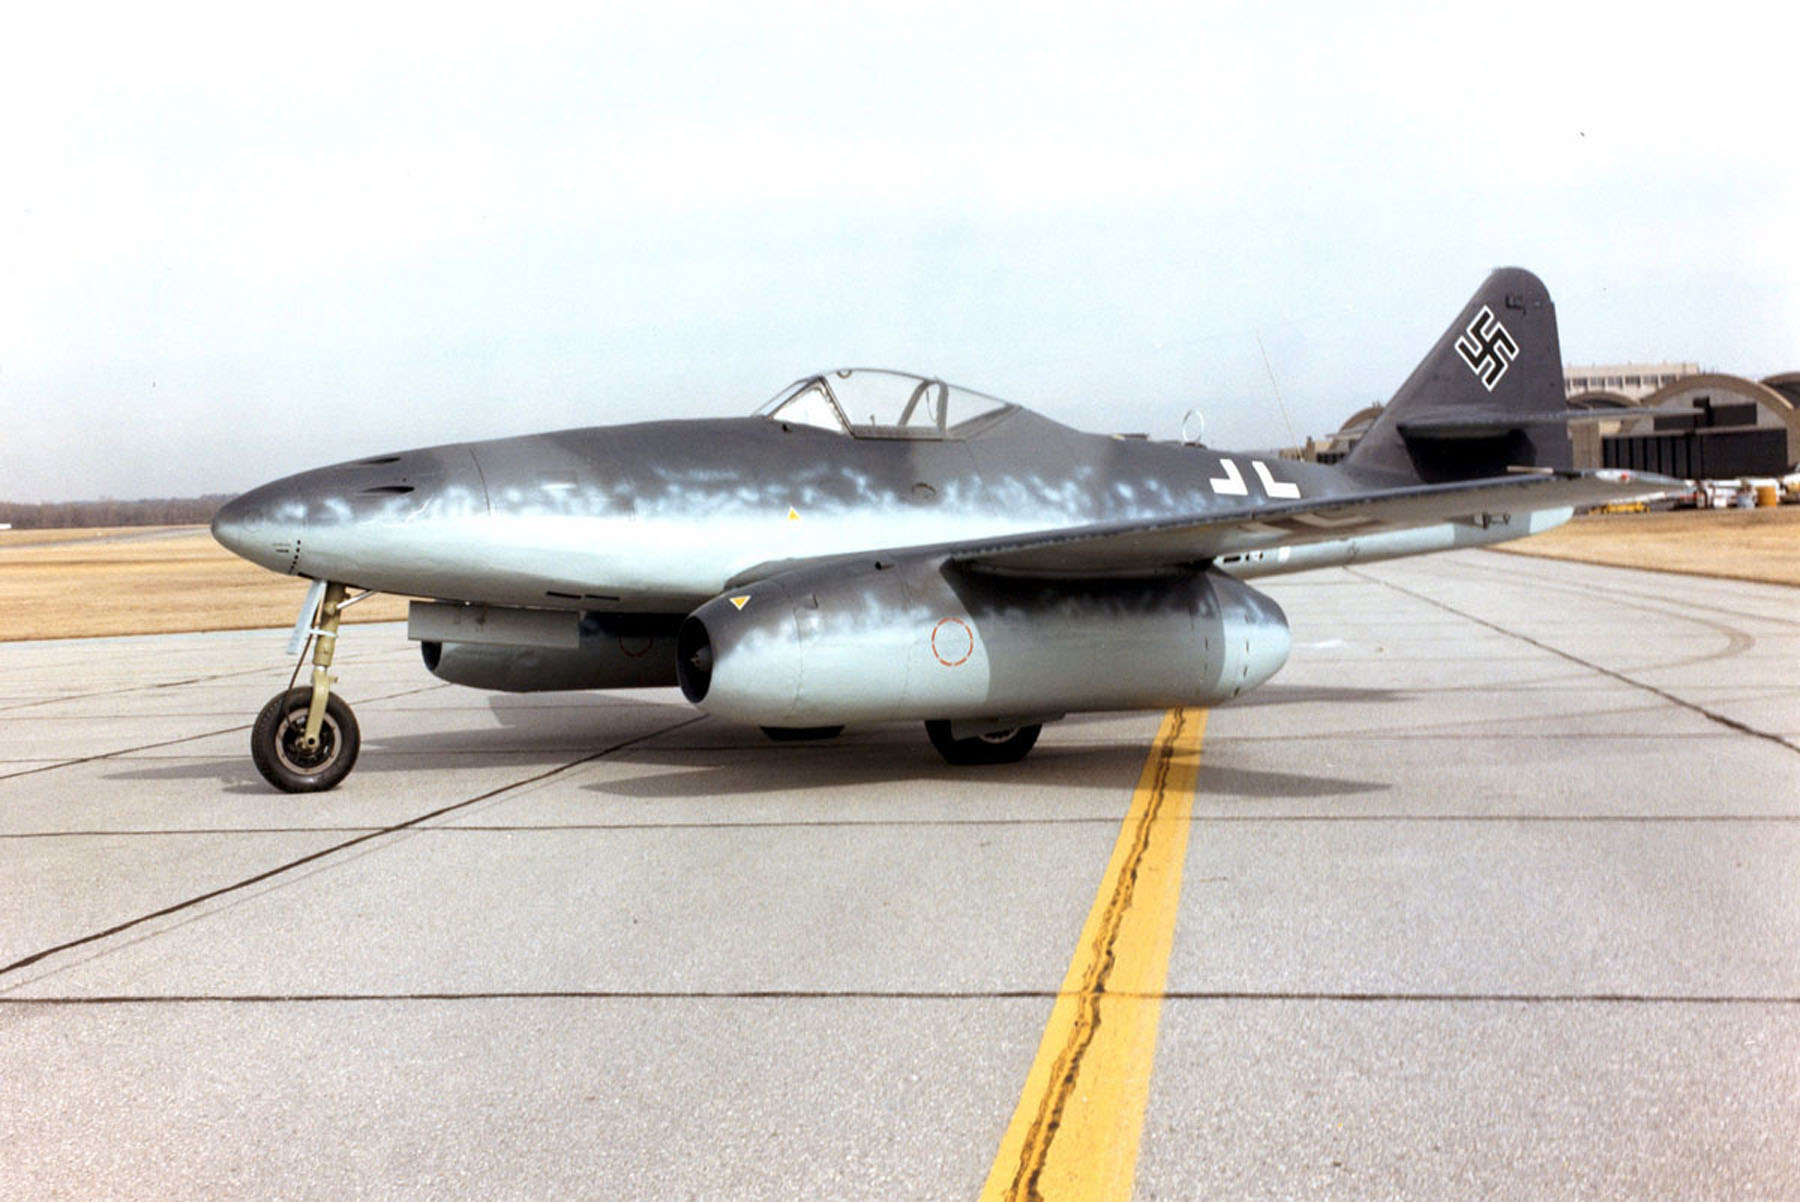 The Me 262, the Nazi jet fighter that appeared too late in the war to save the Nazis, but which gave the Soviet Union it's start in building a jet fighter.